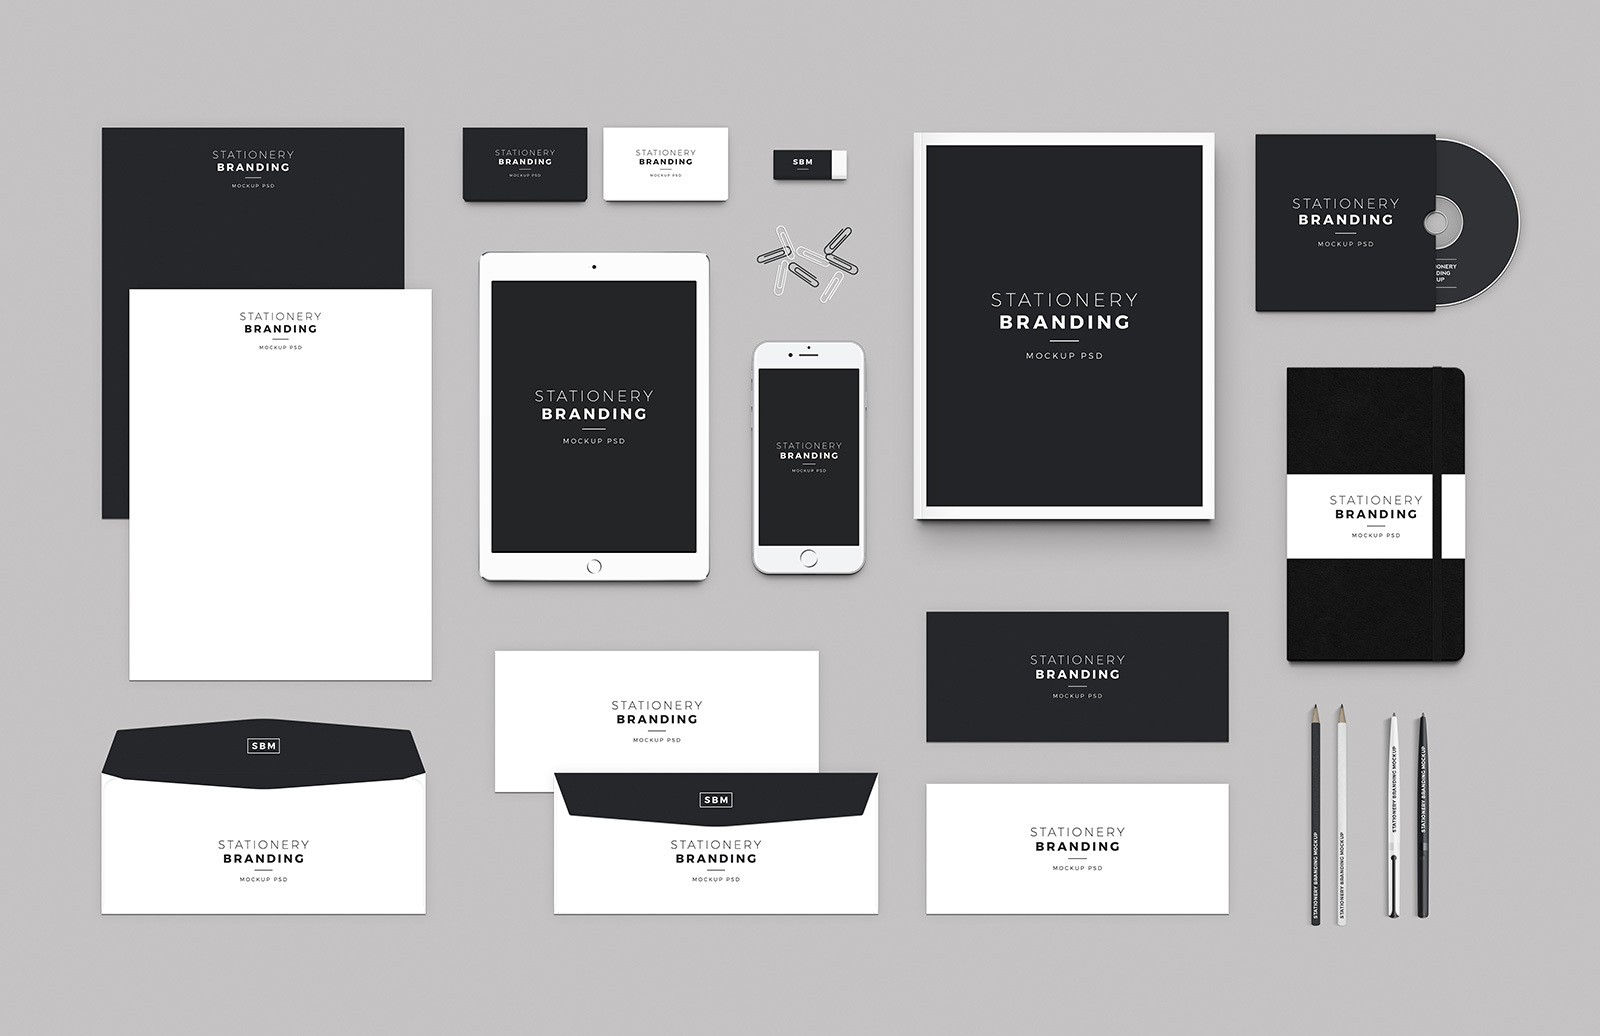 Free Stationery Branding Mockup Pack 1